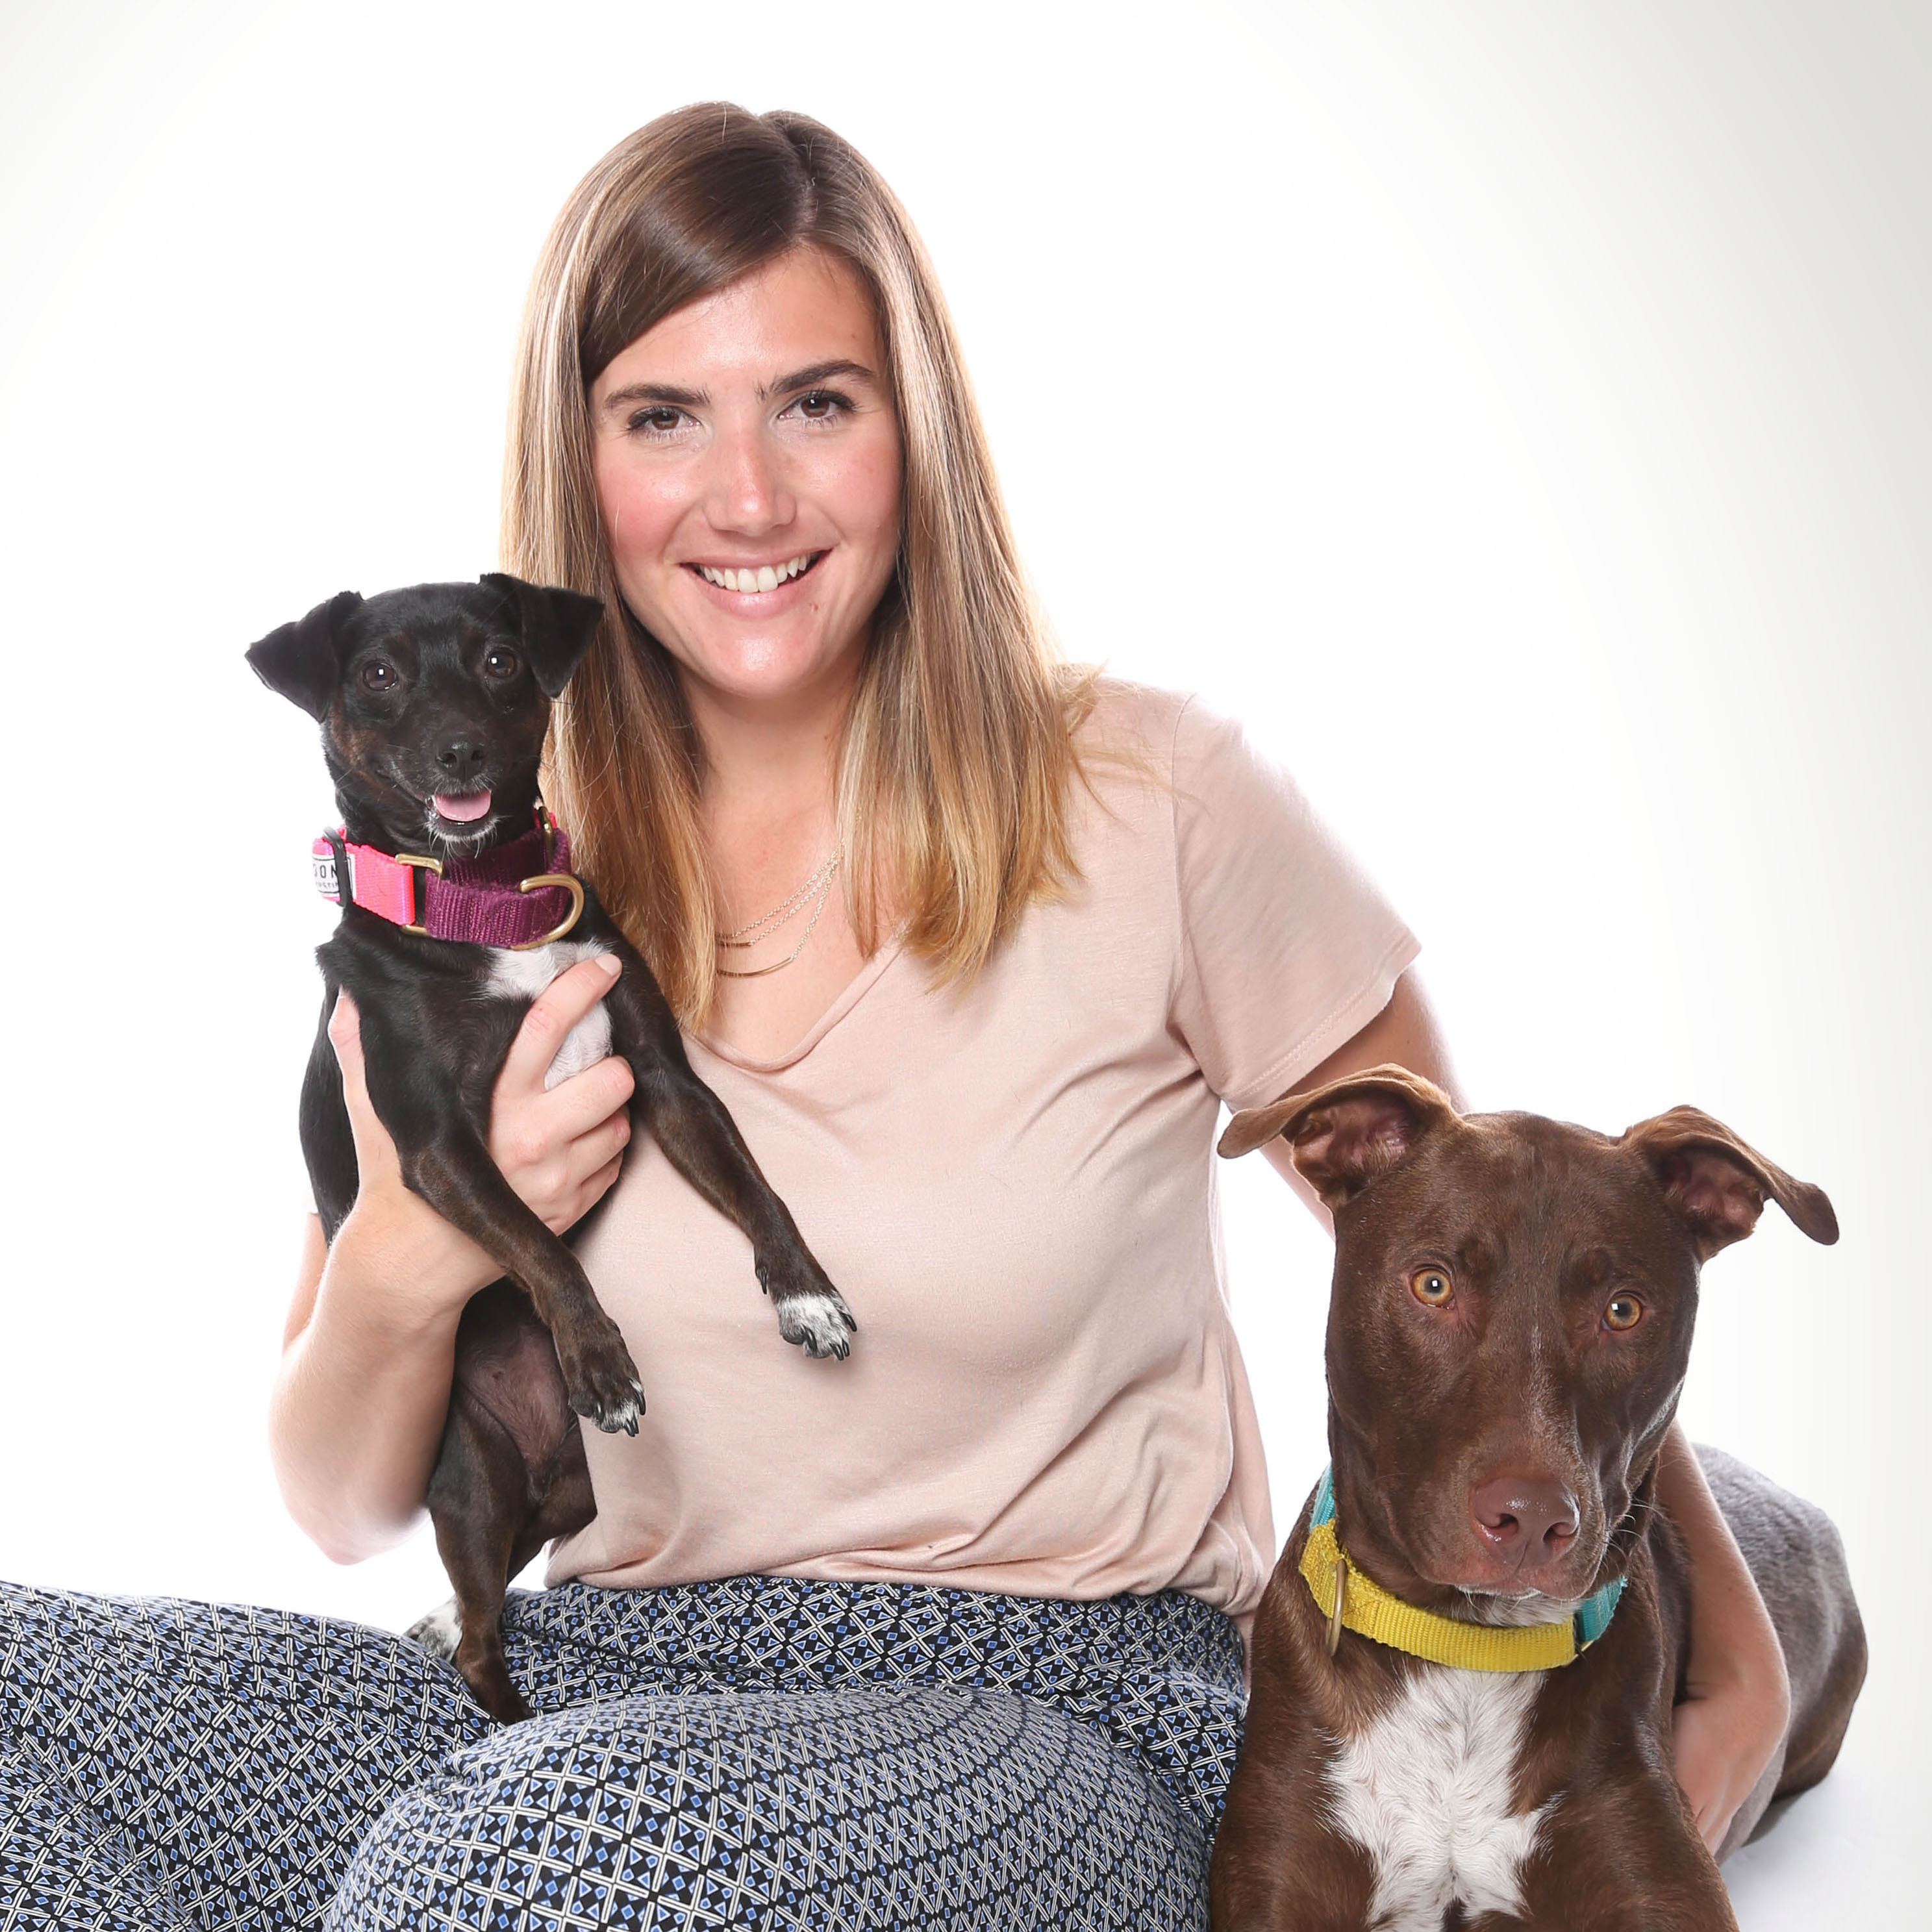 PetRelocation Employee Profile: Kelcey, International Relocation Coordinator